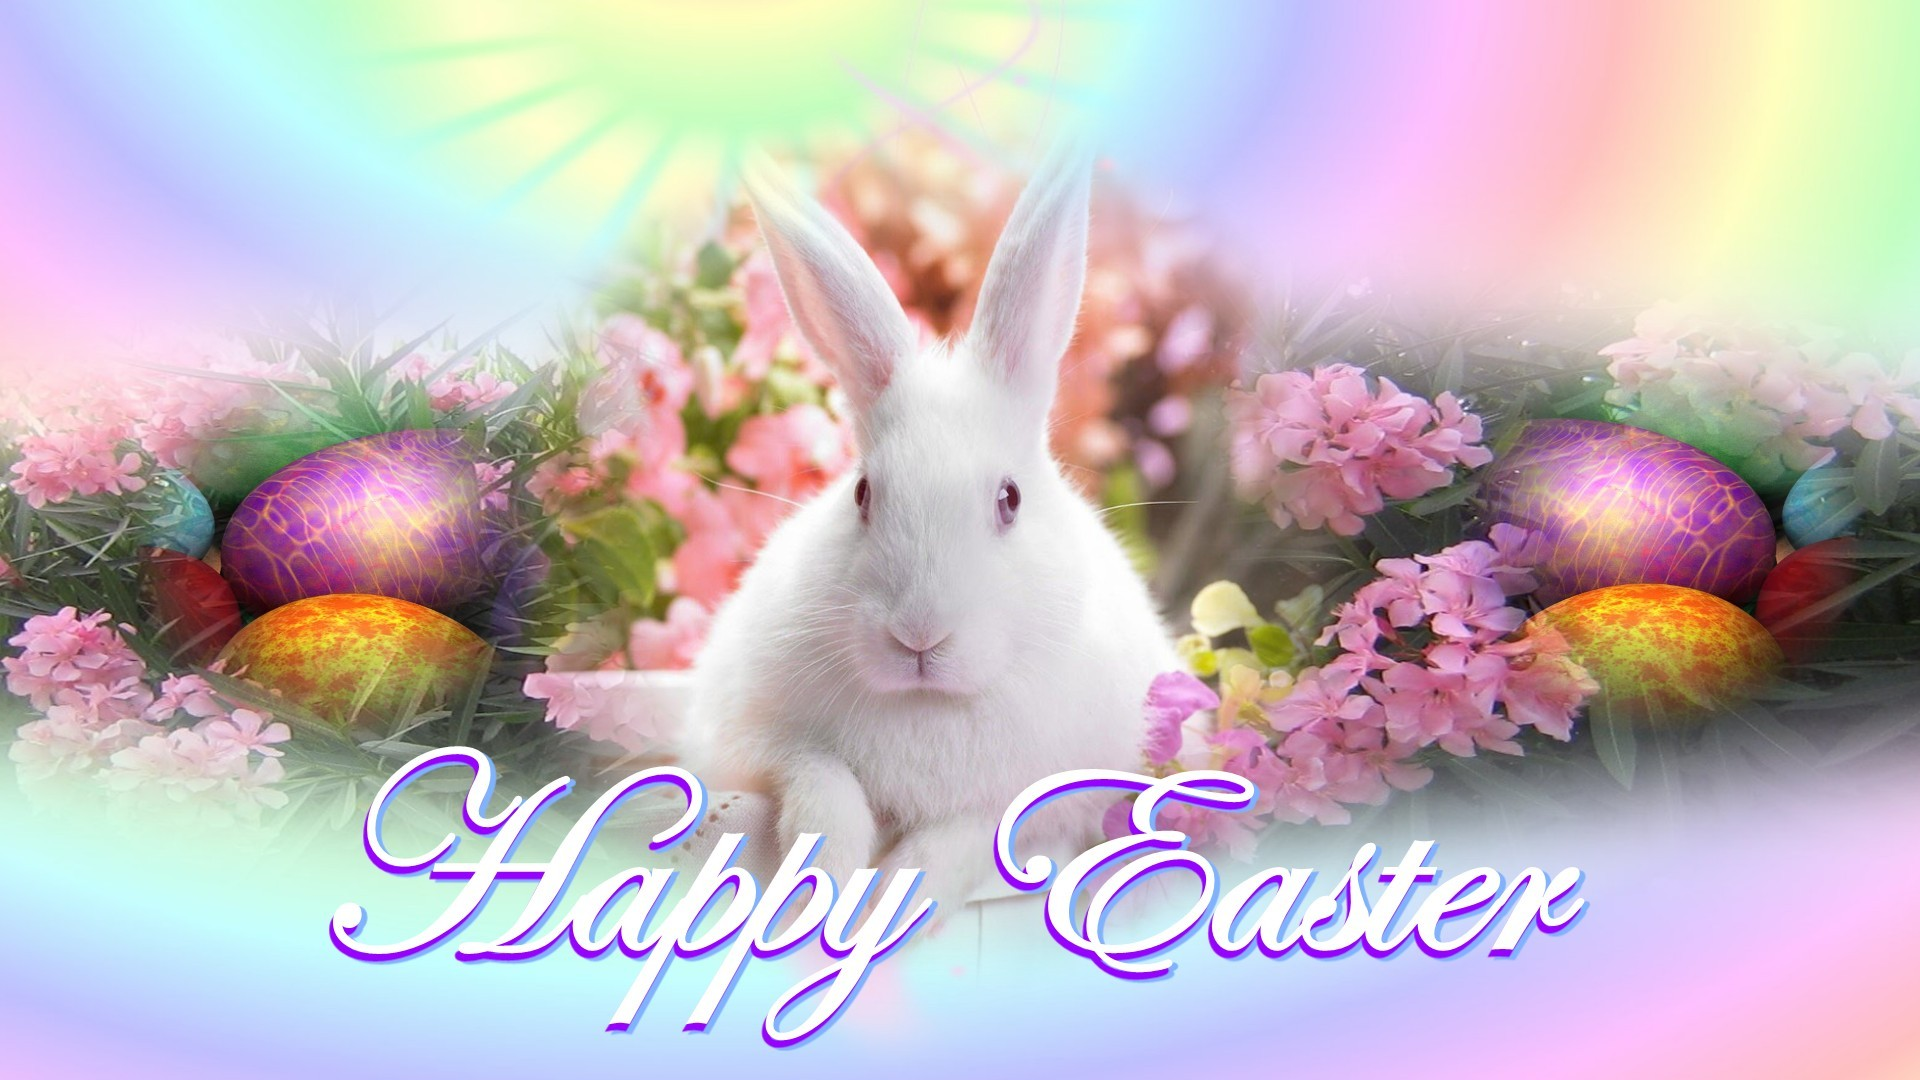 Happy Easter Bunny 2013 | Wallpup.com